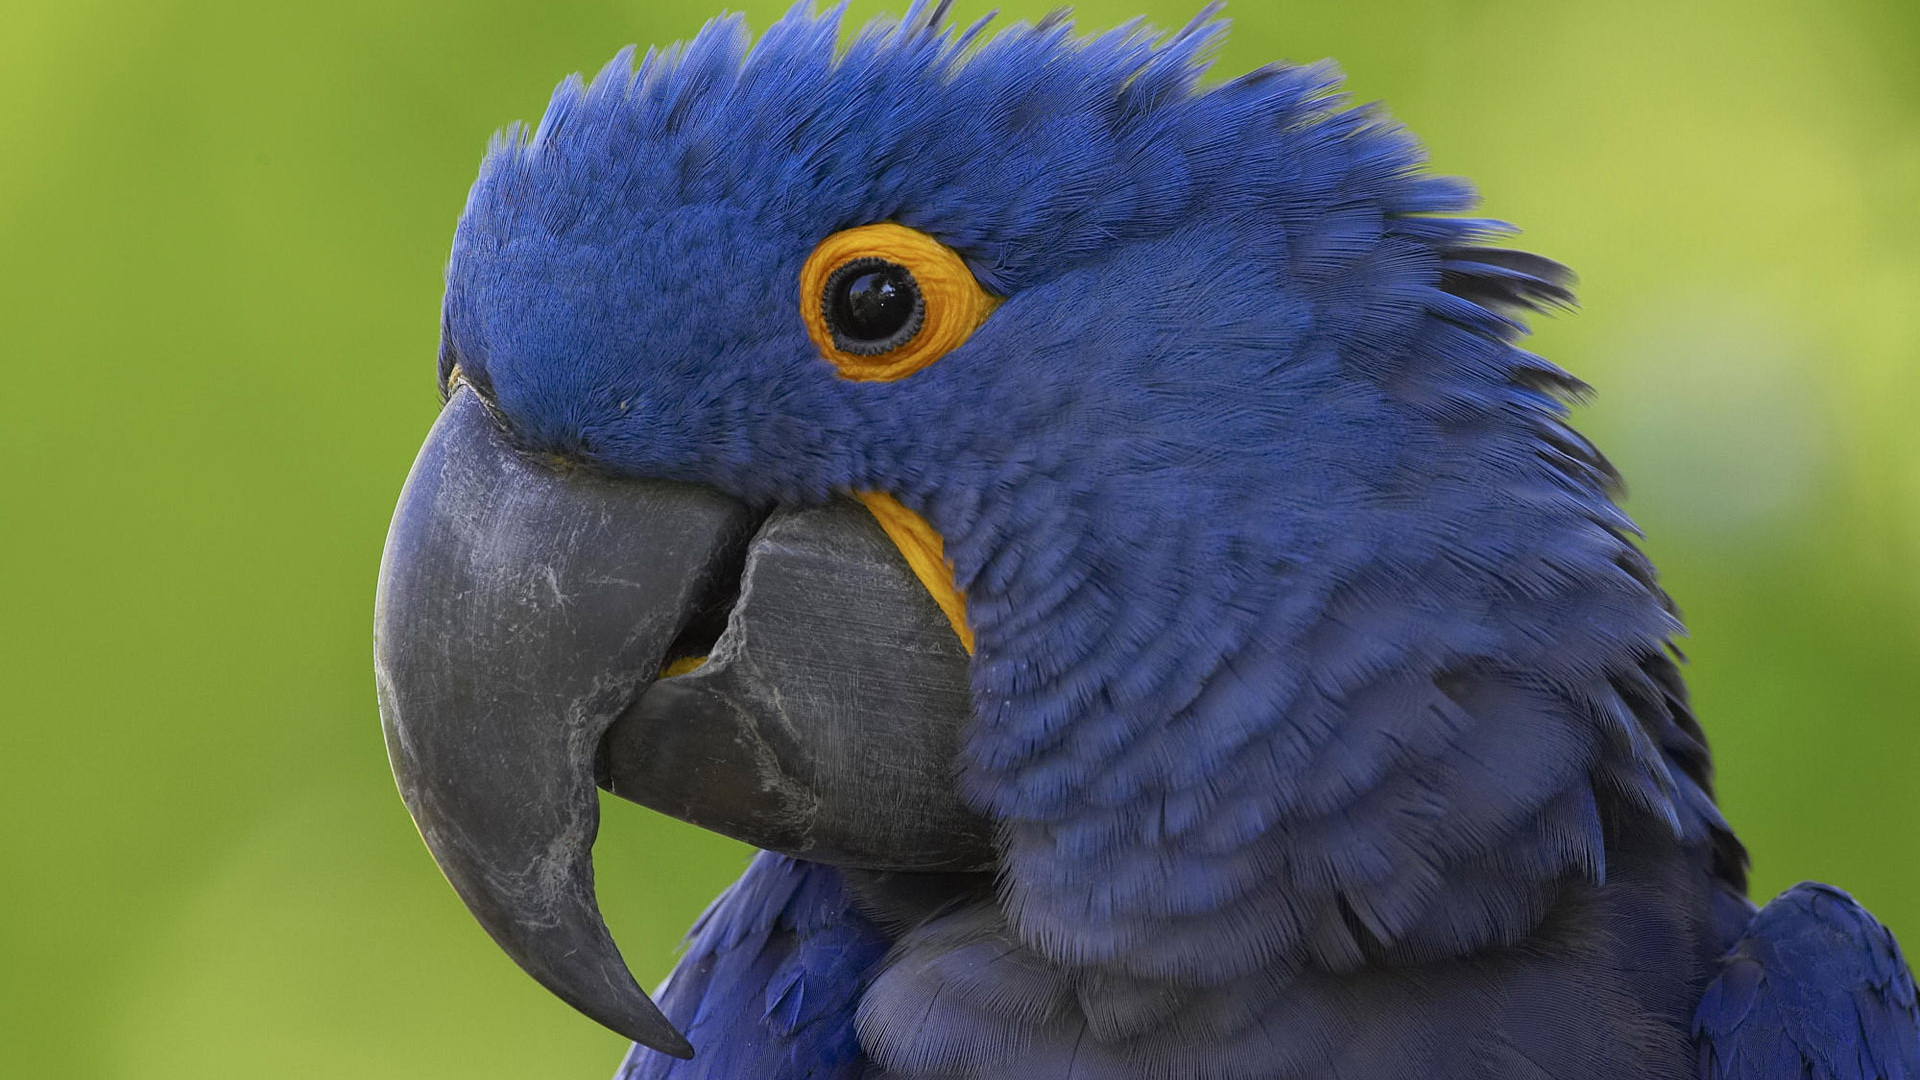 Hyacinth Macaw Full HD Wallpaper and Background Image ...